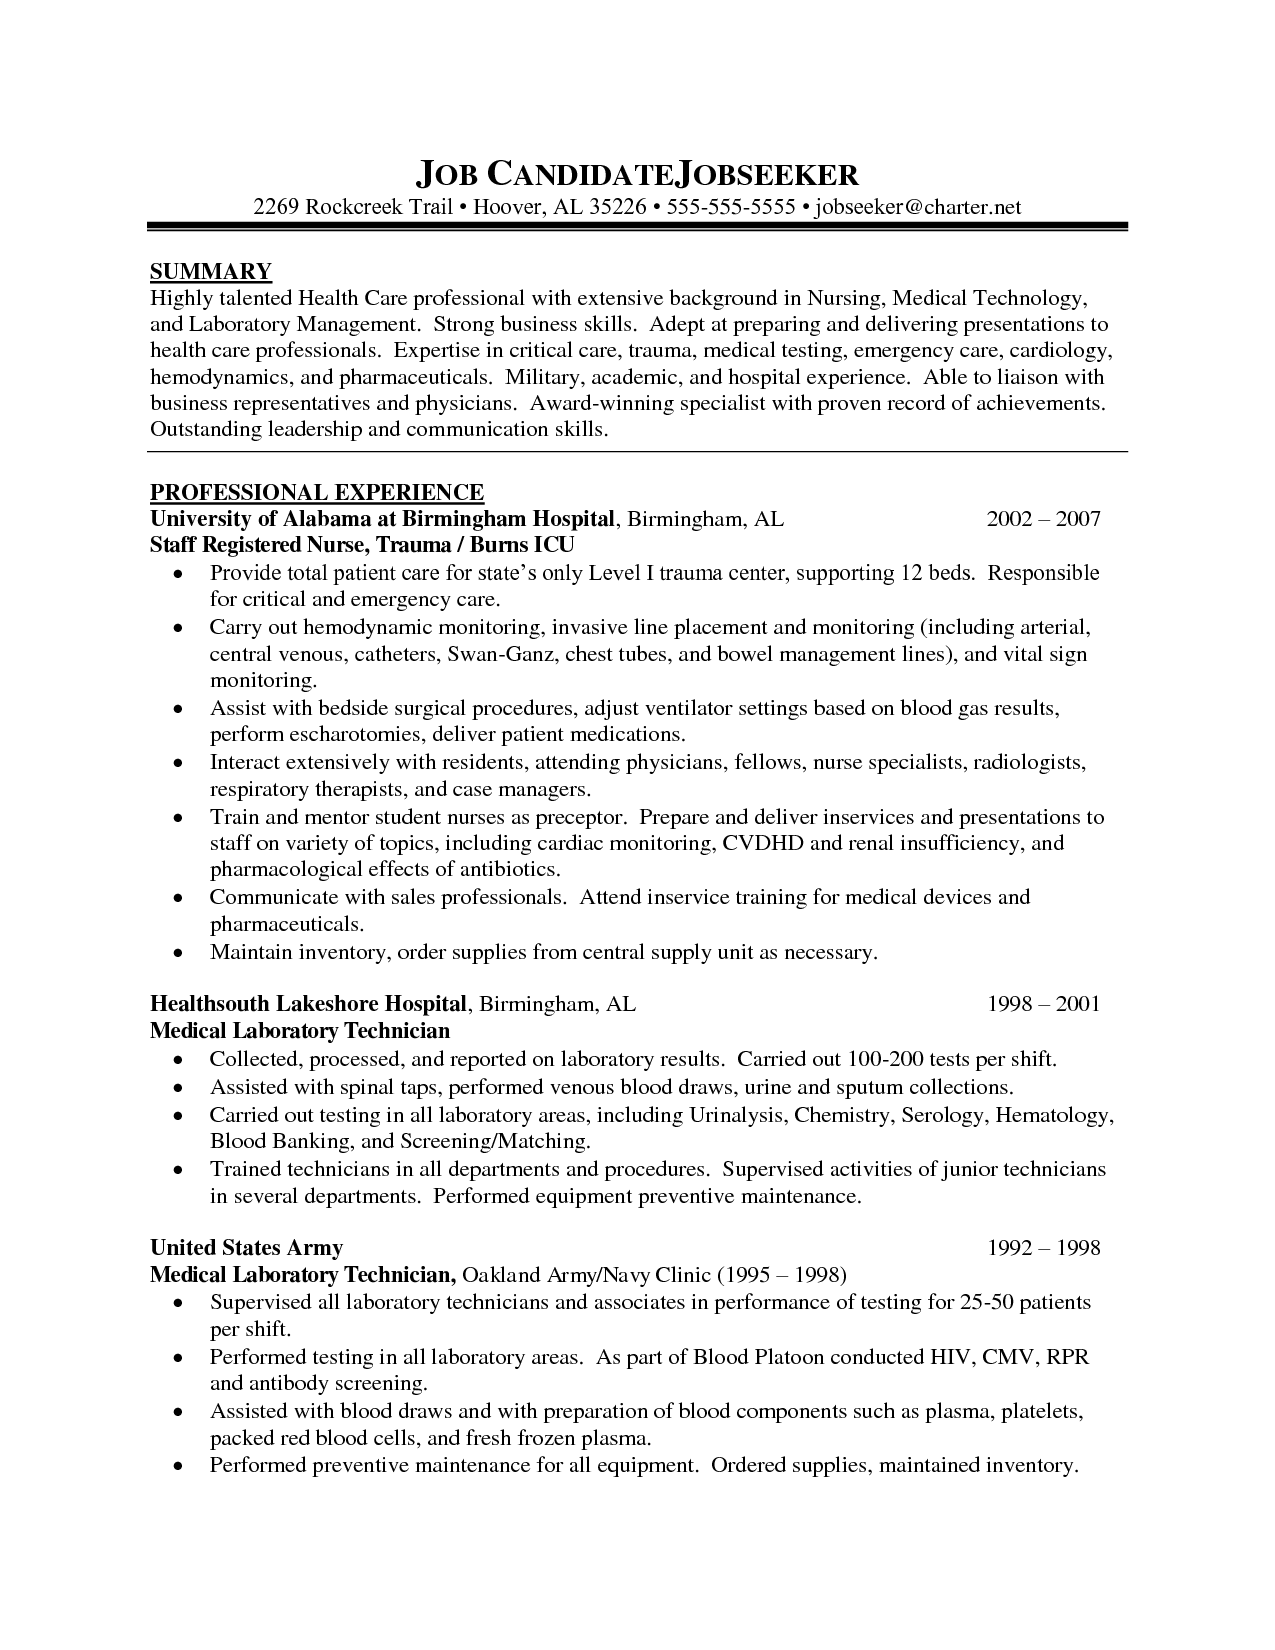 Oncology Nurse Resume Objective http//www.resumecareer